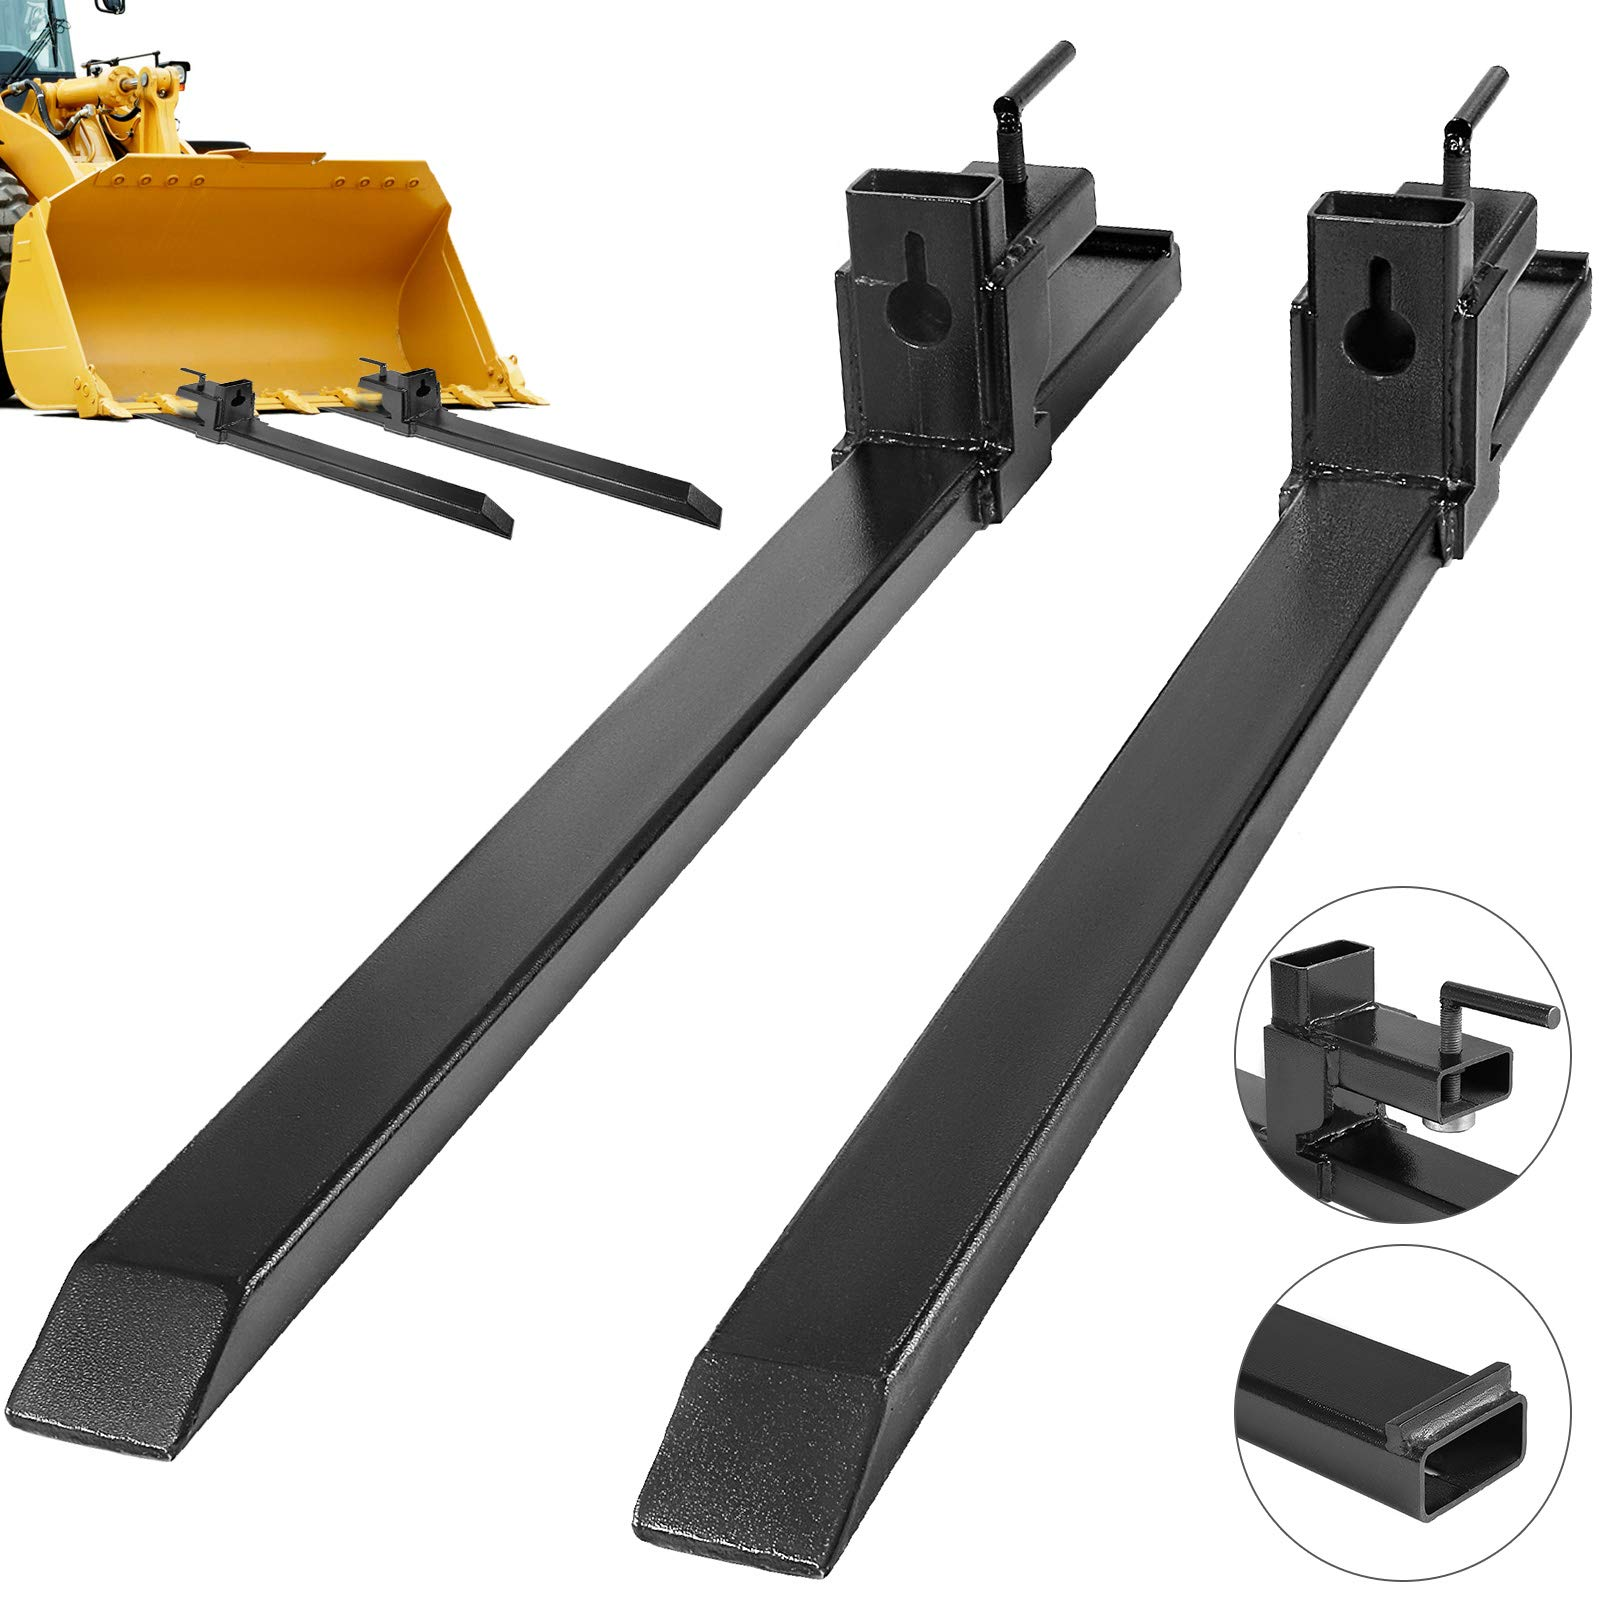 Mophorn Clamp on Pallet Forks 1500LBS Pallet Fork 30'' Pallet Forks for Tractor Bucket Loader Skid Steer (1500LBS) by Mophorn